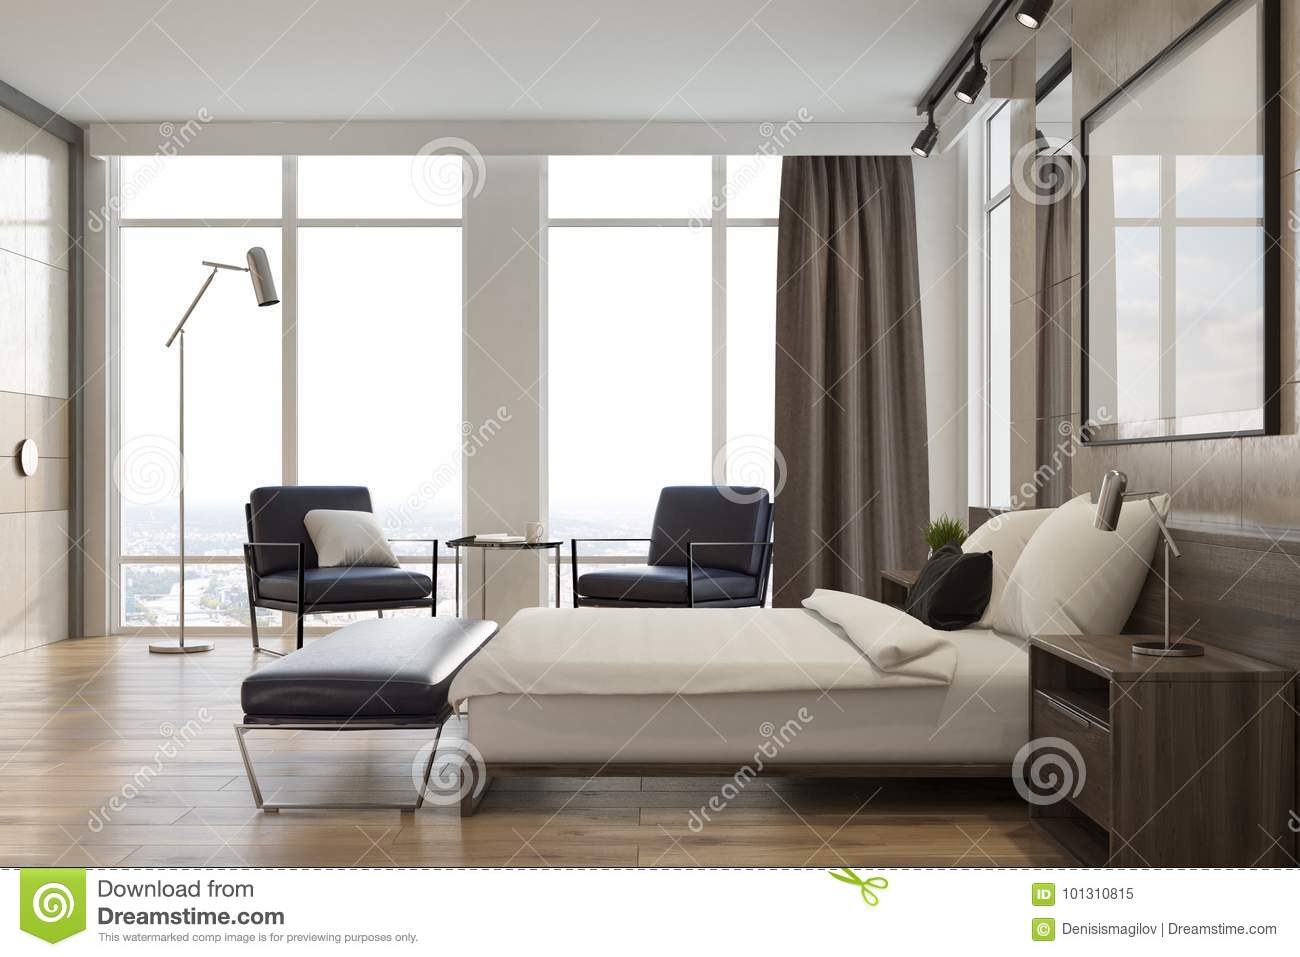 Light Gray Bedroom Interior, Poster, Side View Stock Illustration ...